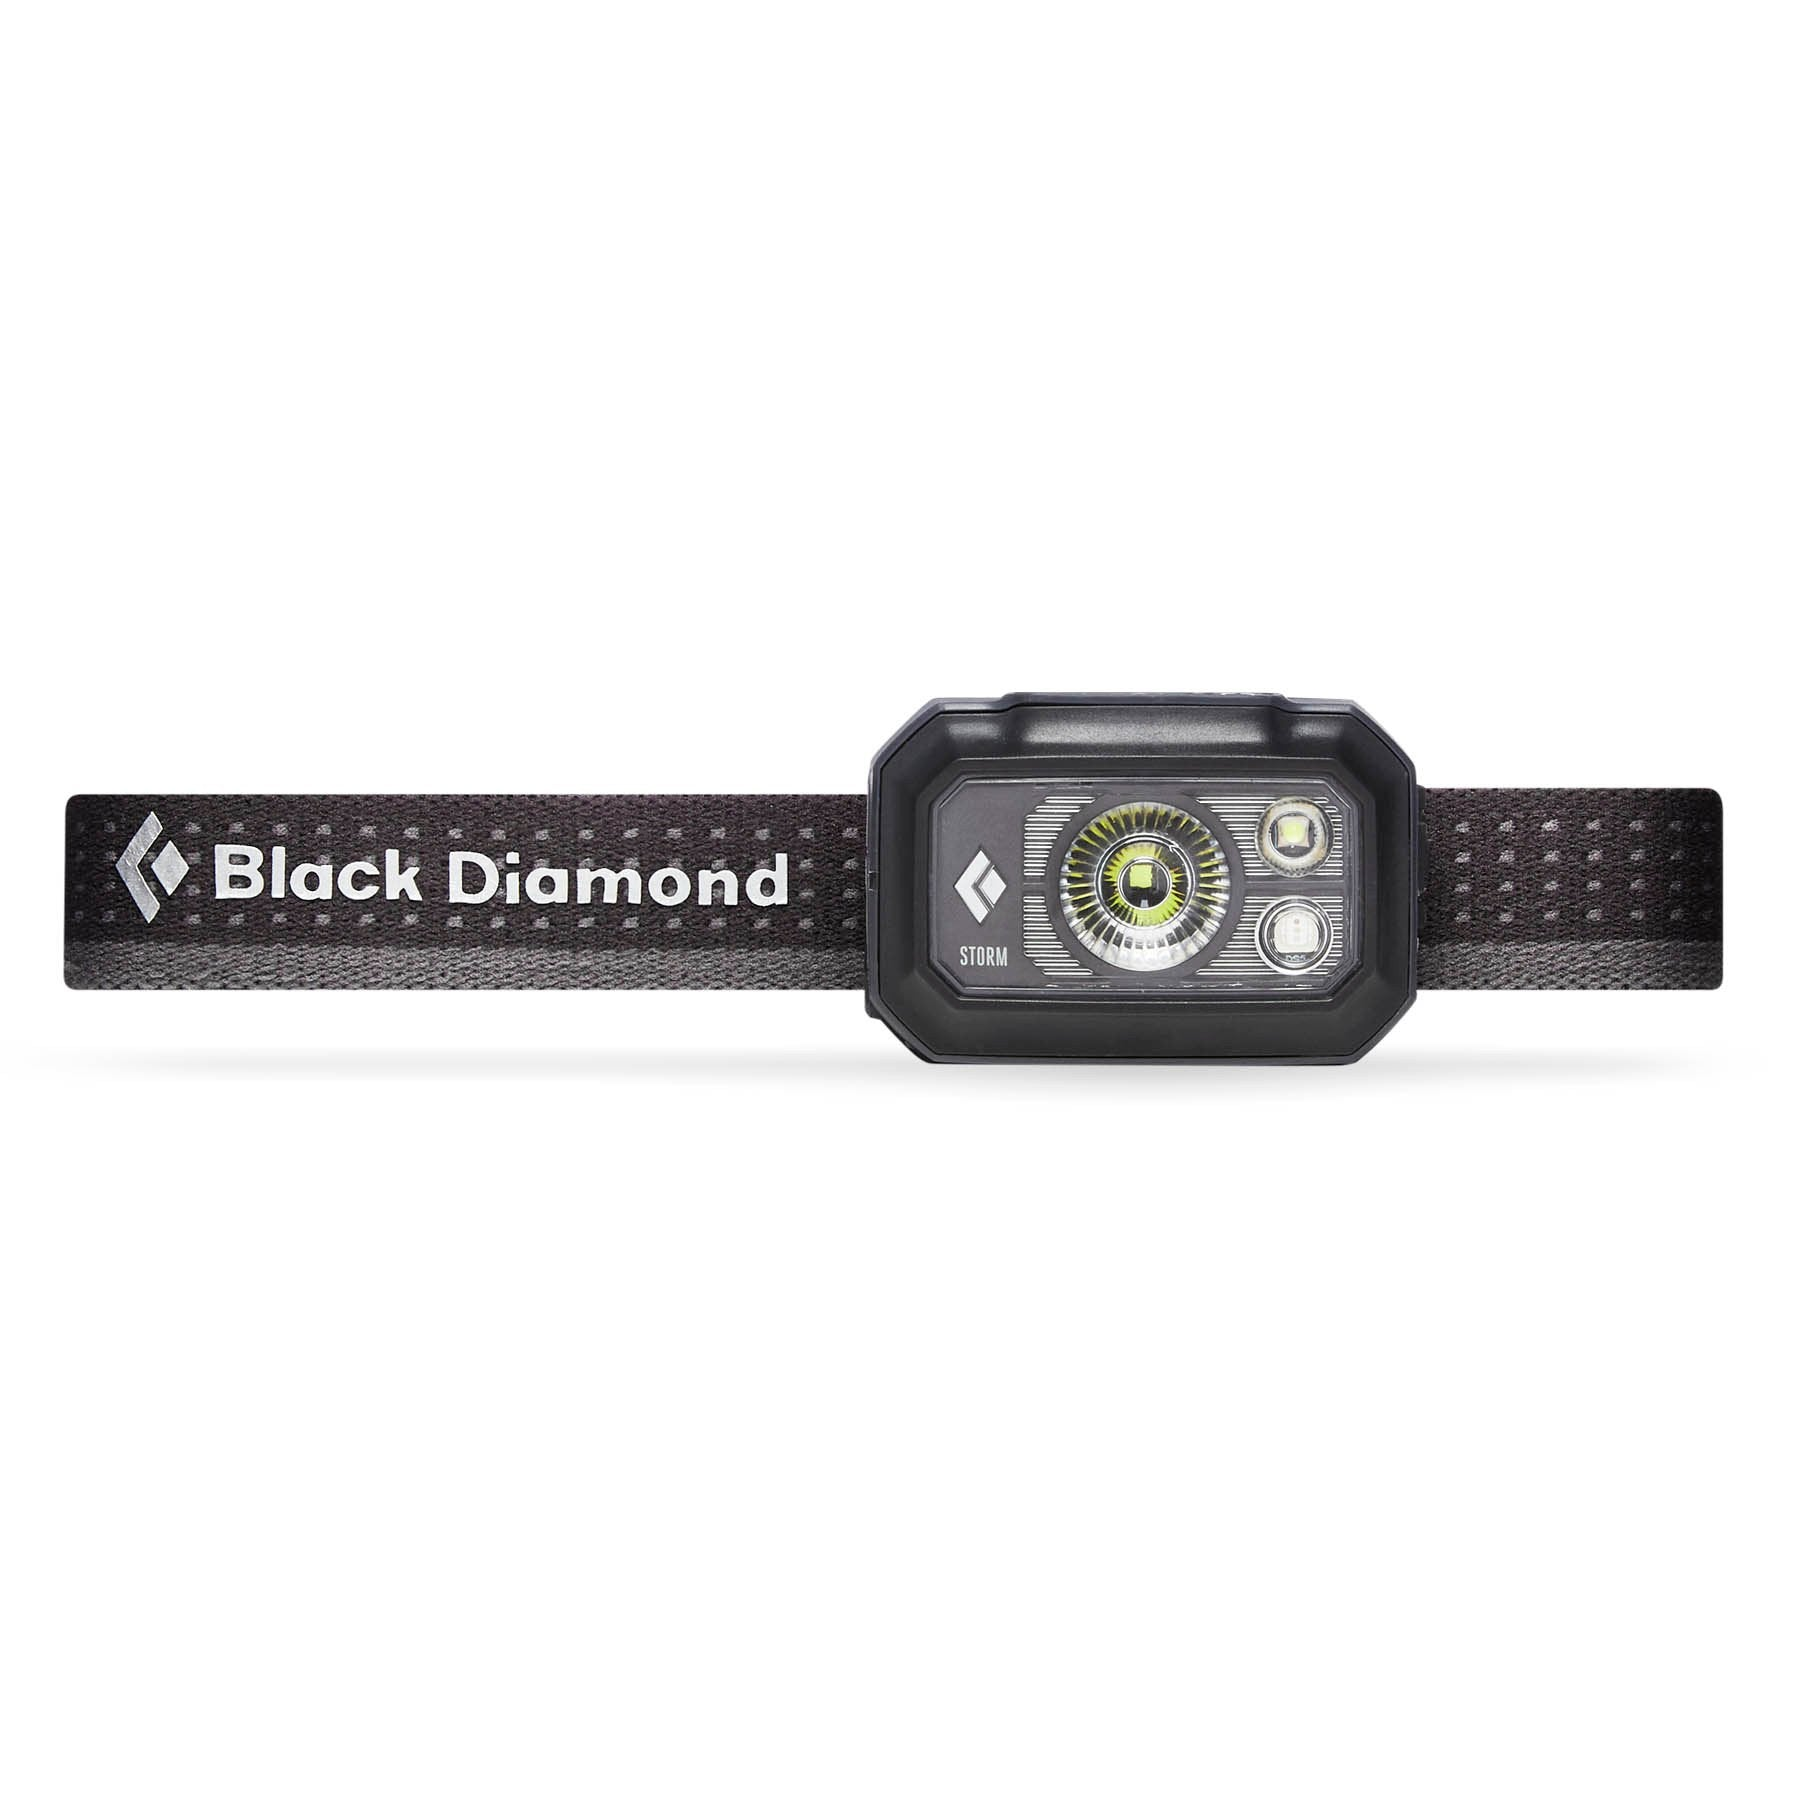 Black Diamond Storm 375 in Graphite Black